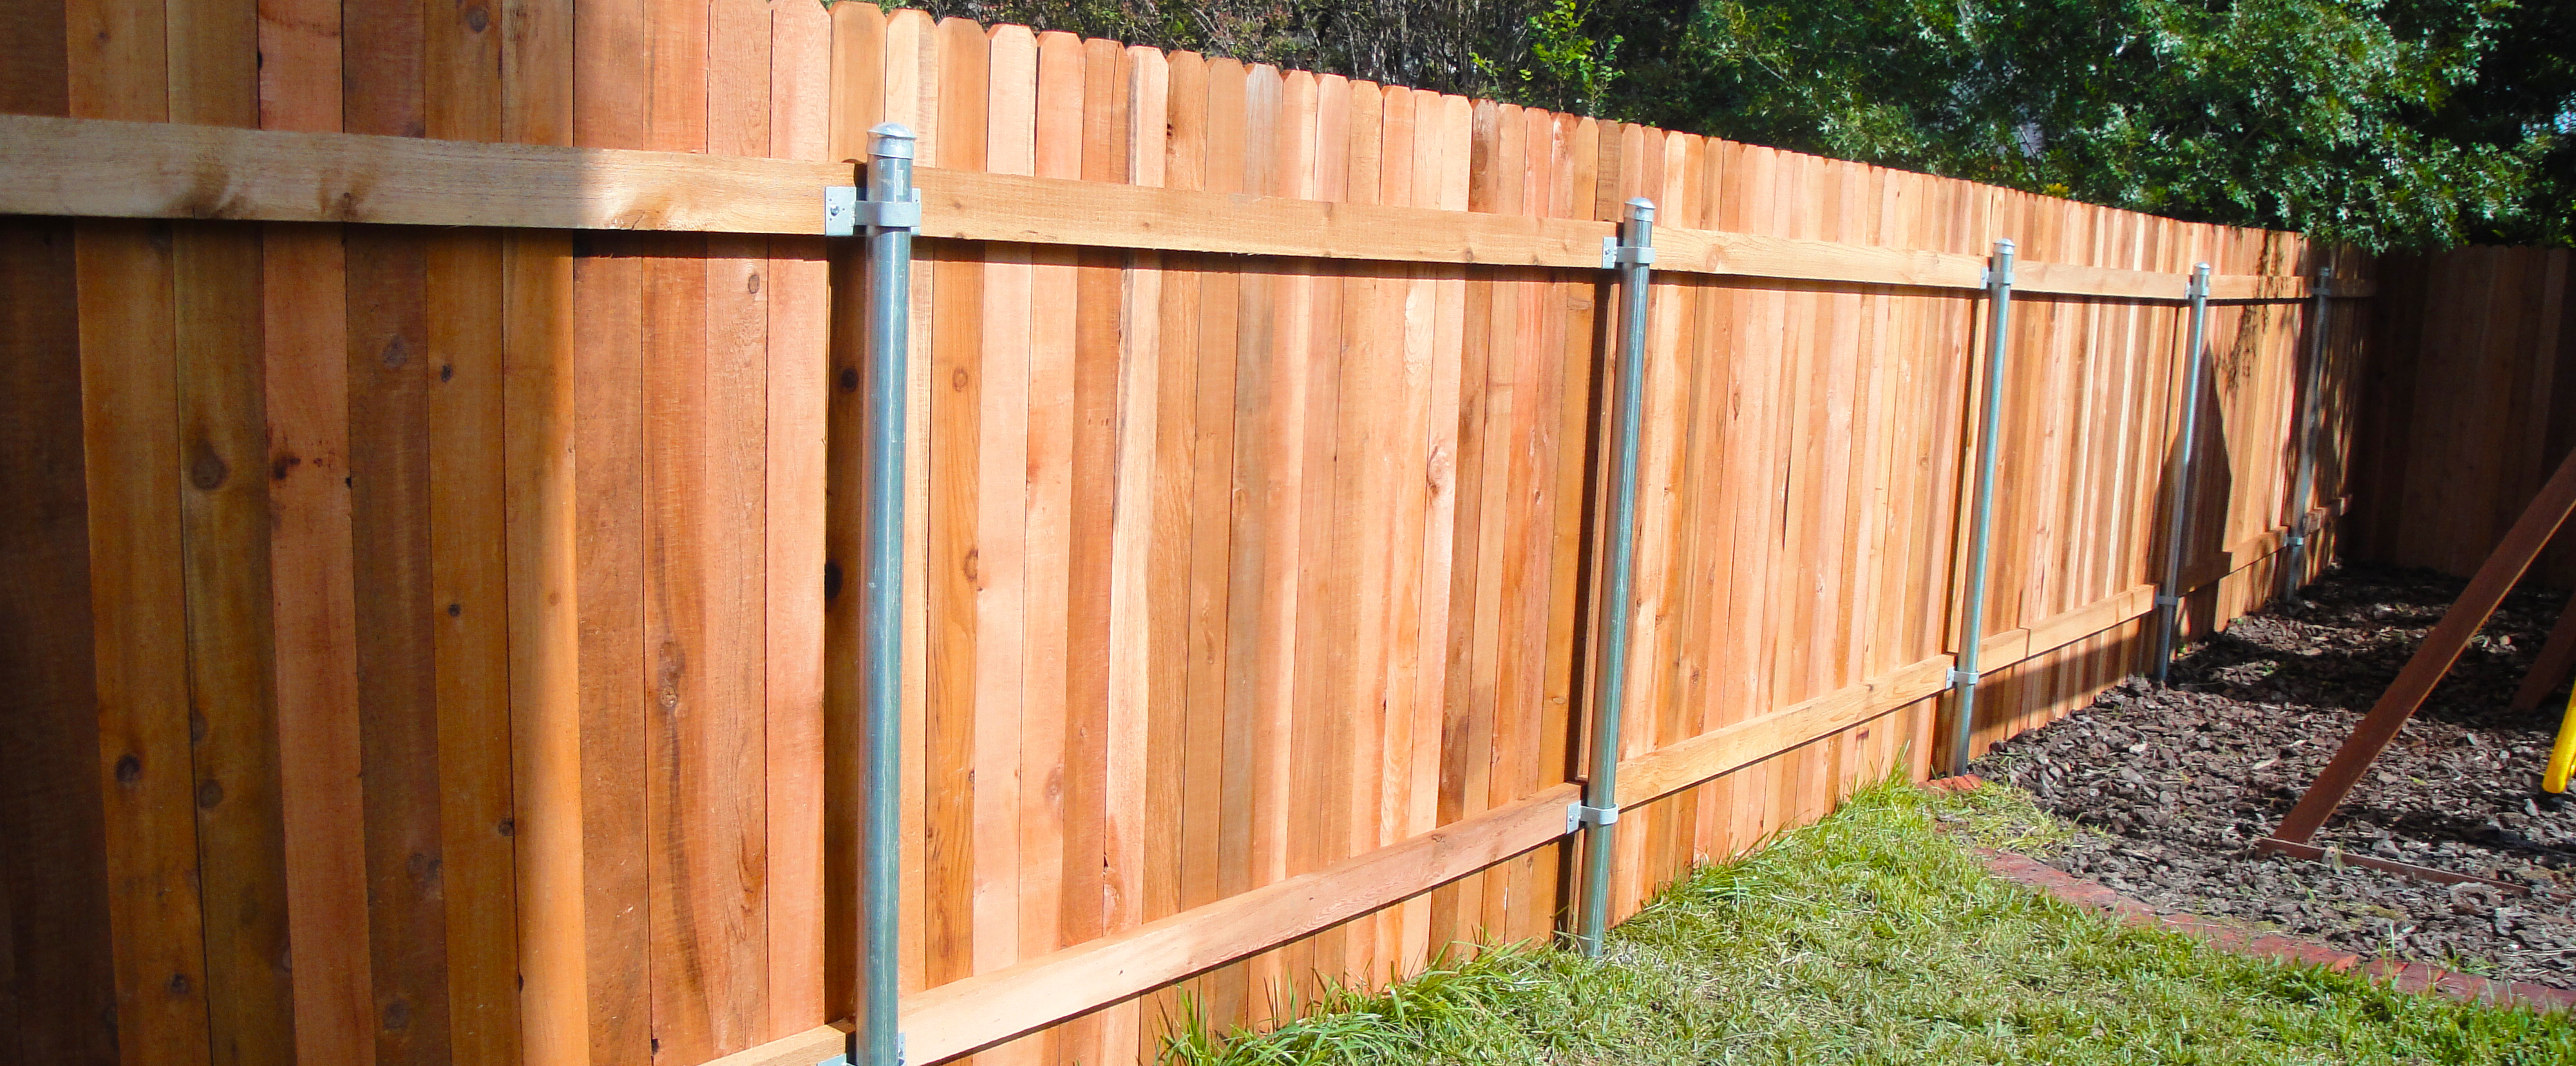 Wooden backyard fence with steel posts